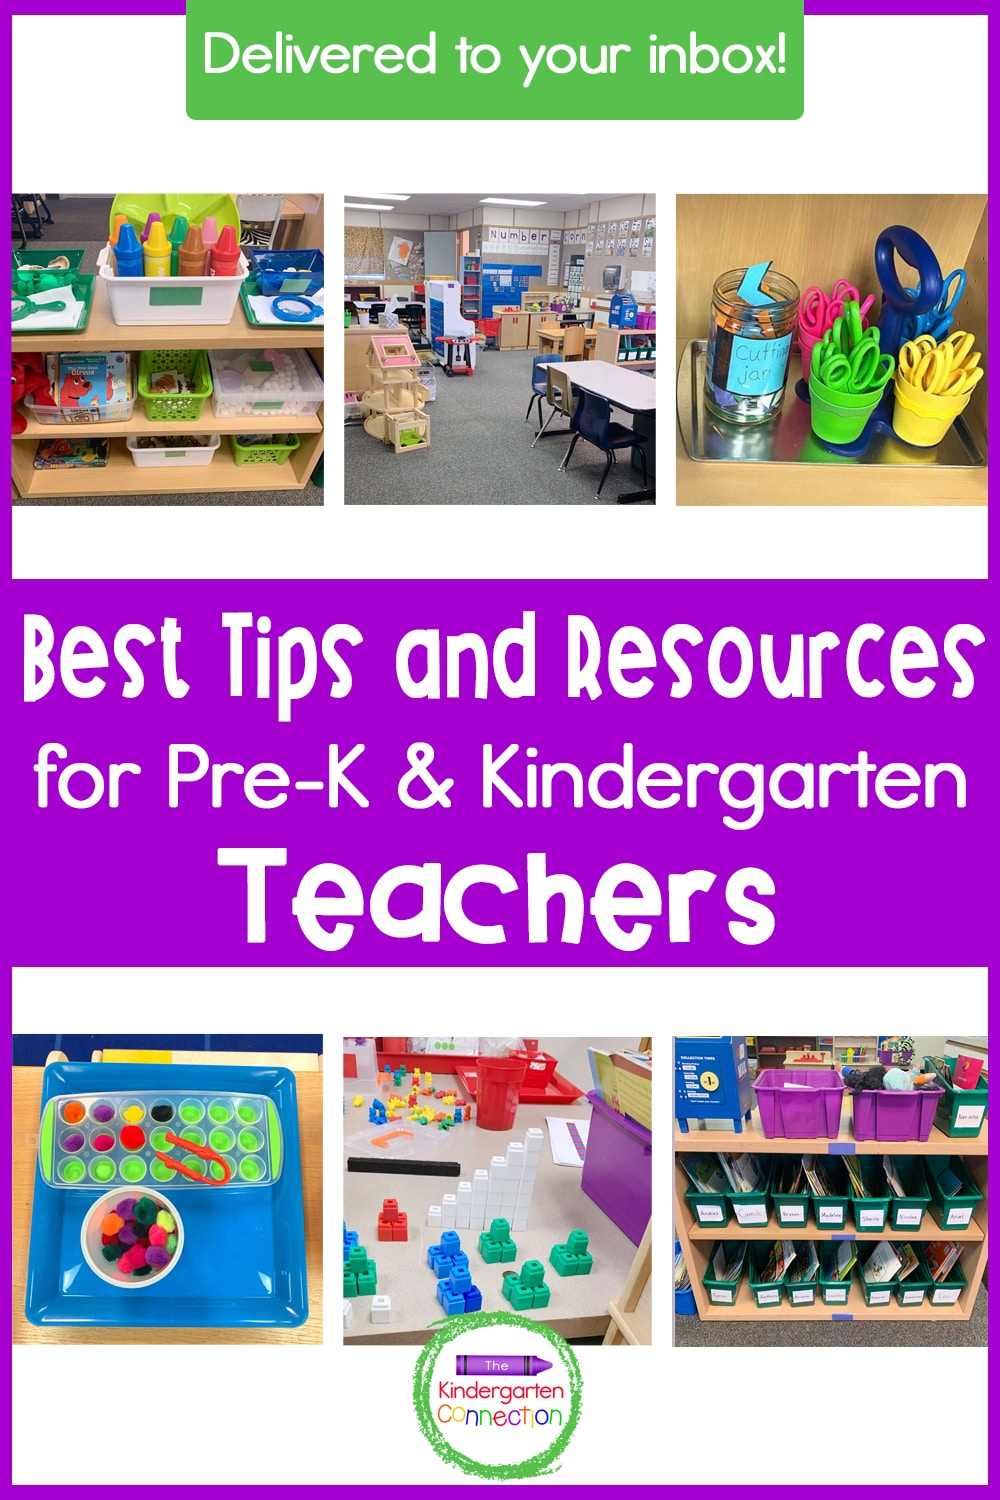 Sign up for our FREE email series for Pre-K & Kindergarten Teachers that will deliver weekly teacher tips and strategies to your inbox!